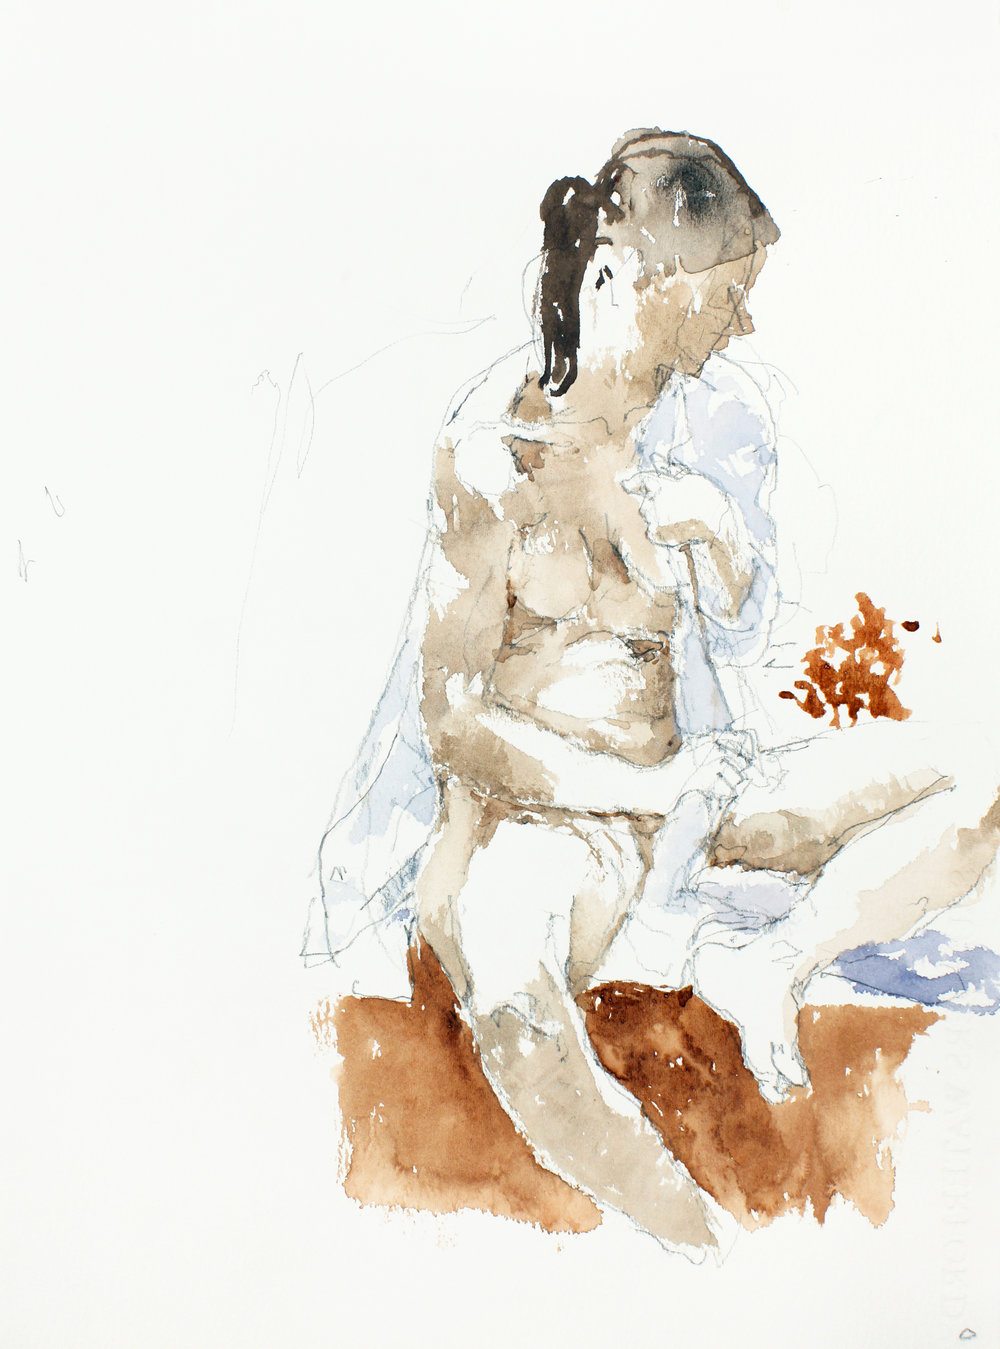 2007_Seated_Nude_watercolour_and_pencil_on_paper_15x11in_38x28cm_WPF111.jpg